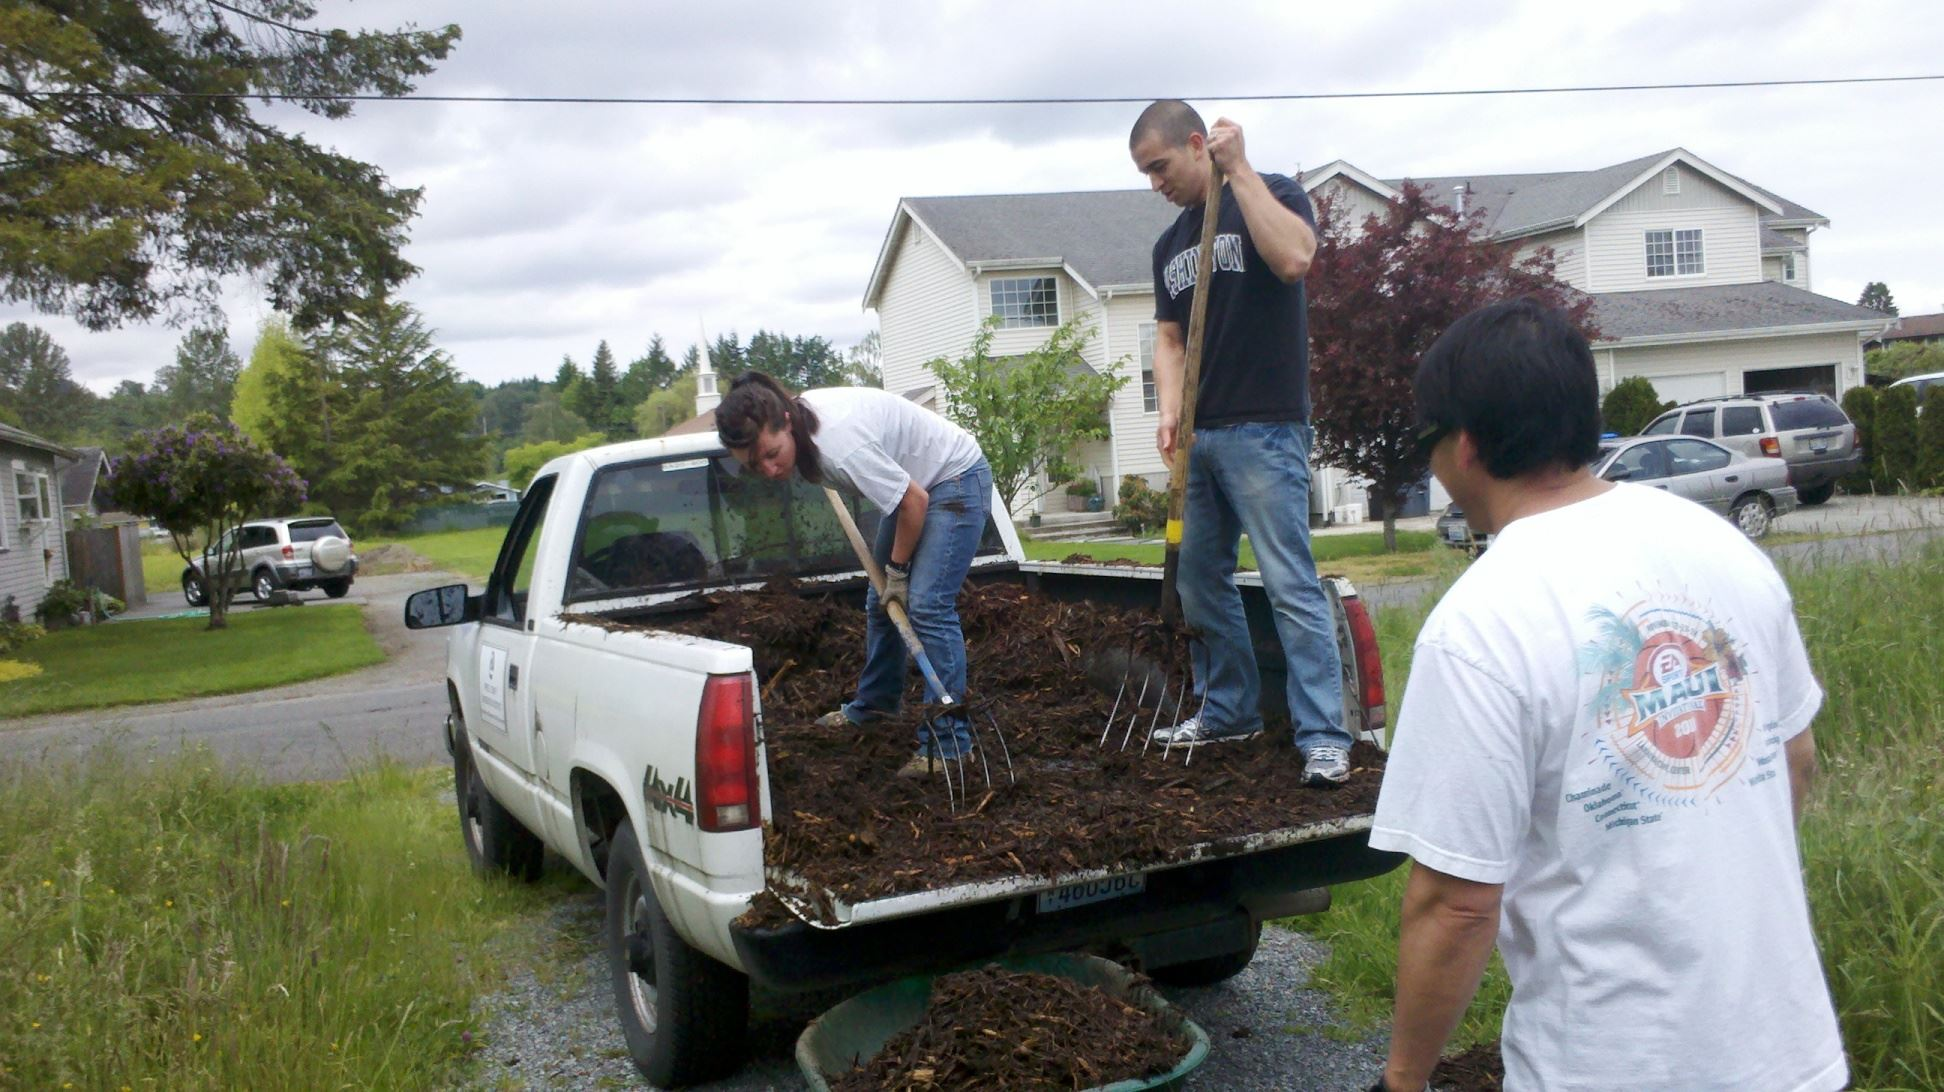 Using Pitchforks to Take Mulch Out of a Truck Bed